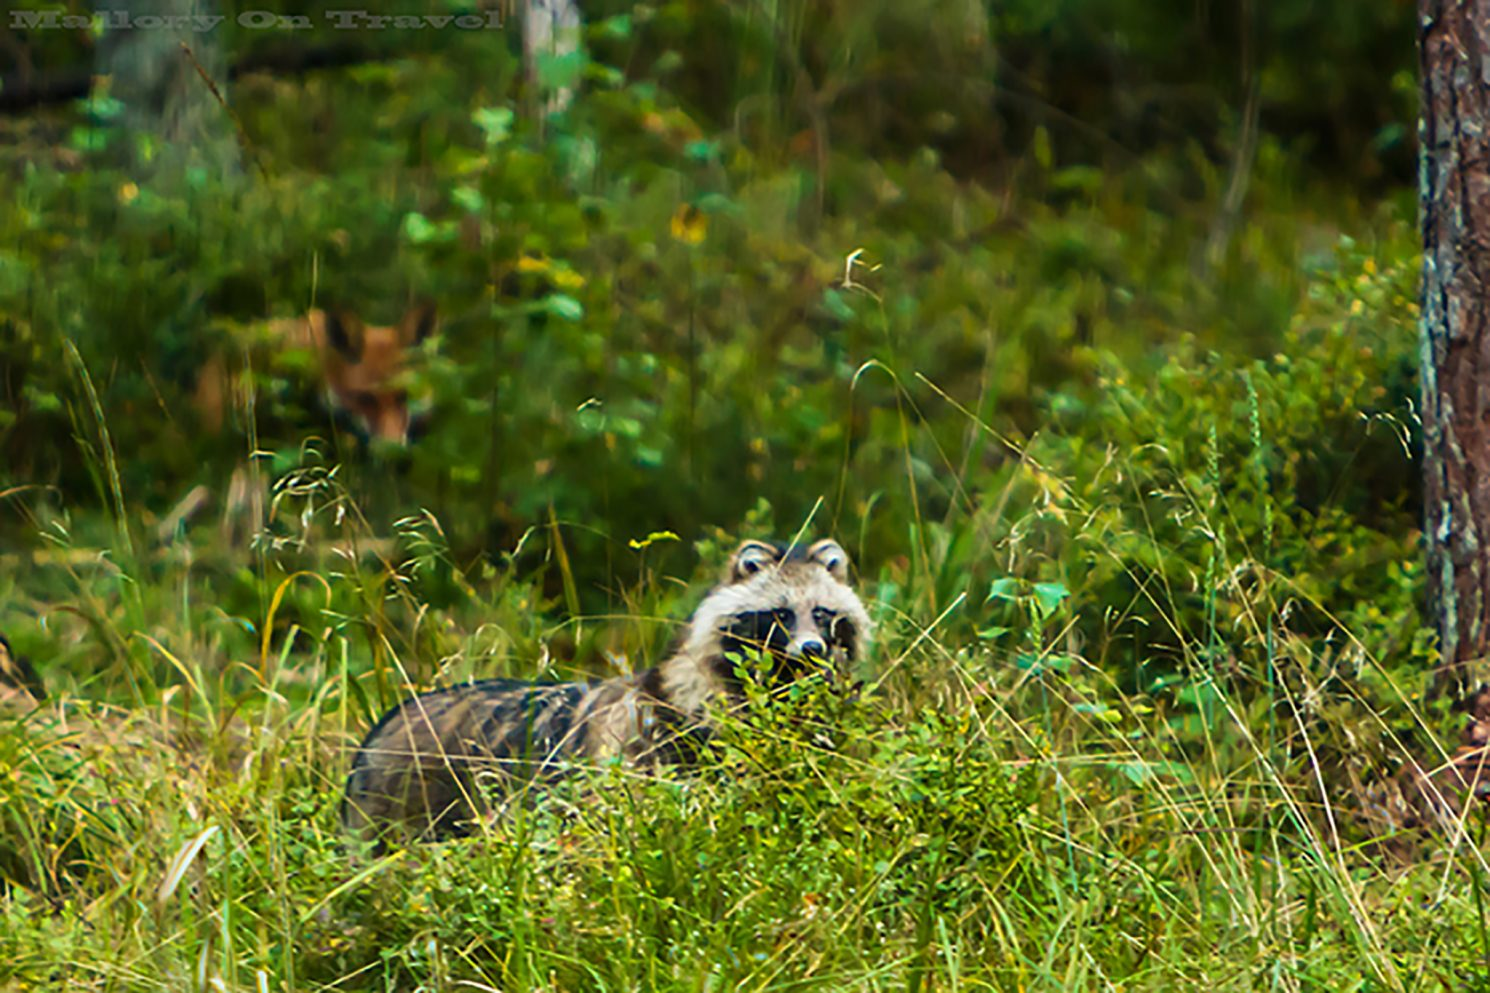 A woodland fox and raccoon dogs in the Alutaguse region of Estonia on Mallory on Travel adventure, adventure travel, photography Iain_Mallory_Est1402199 estonian_wildlife